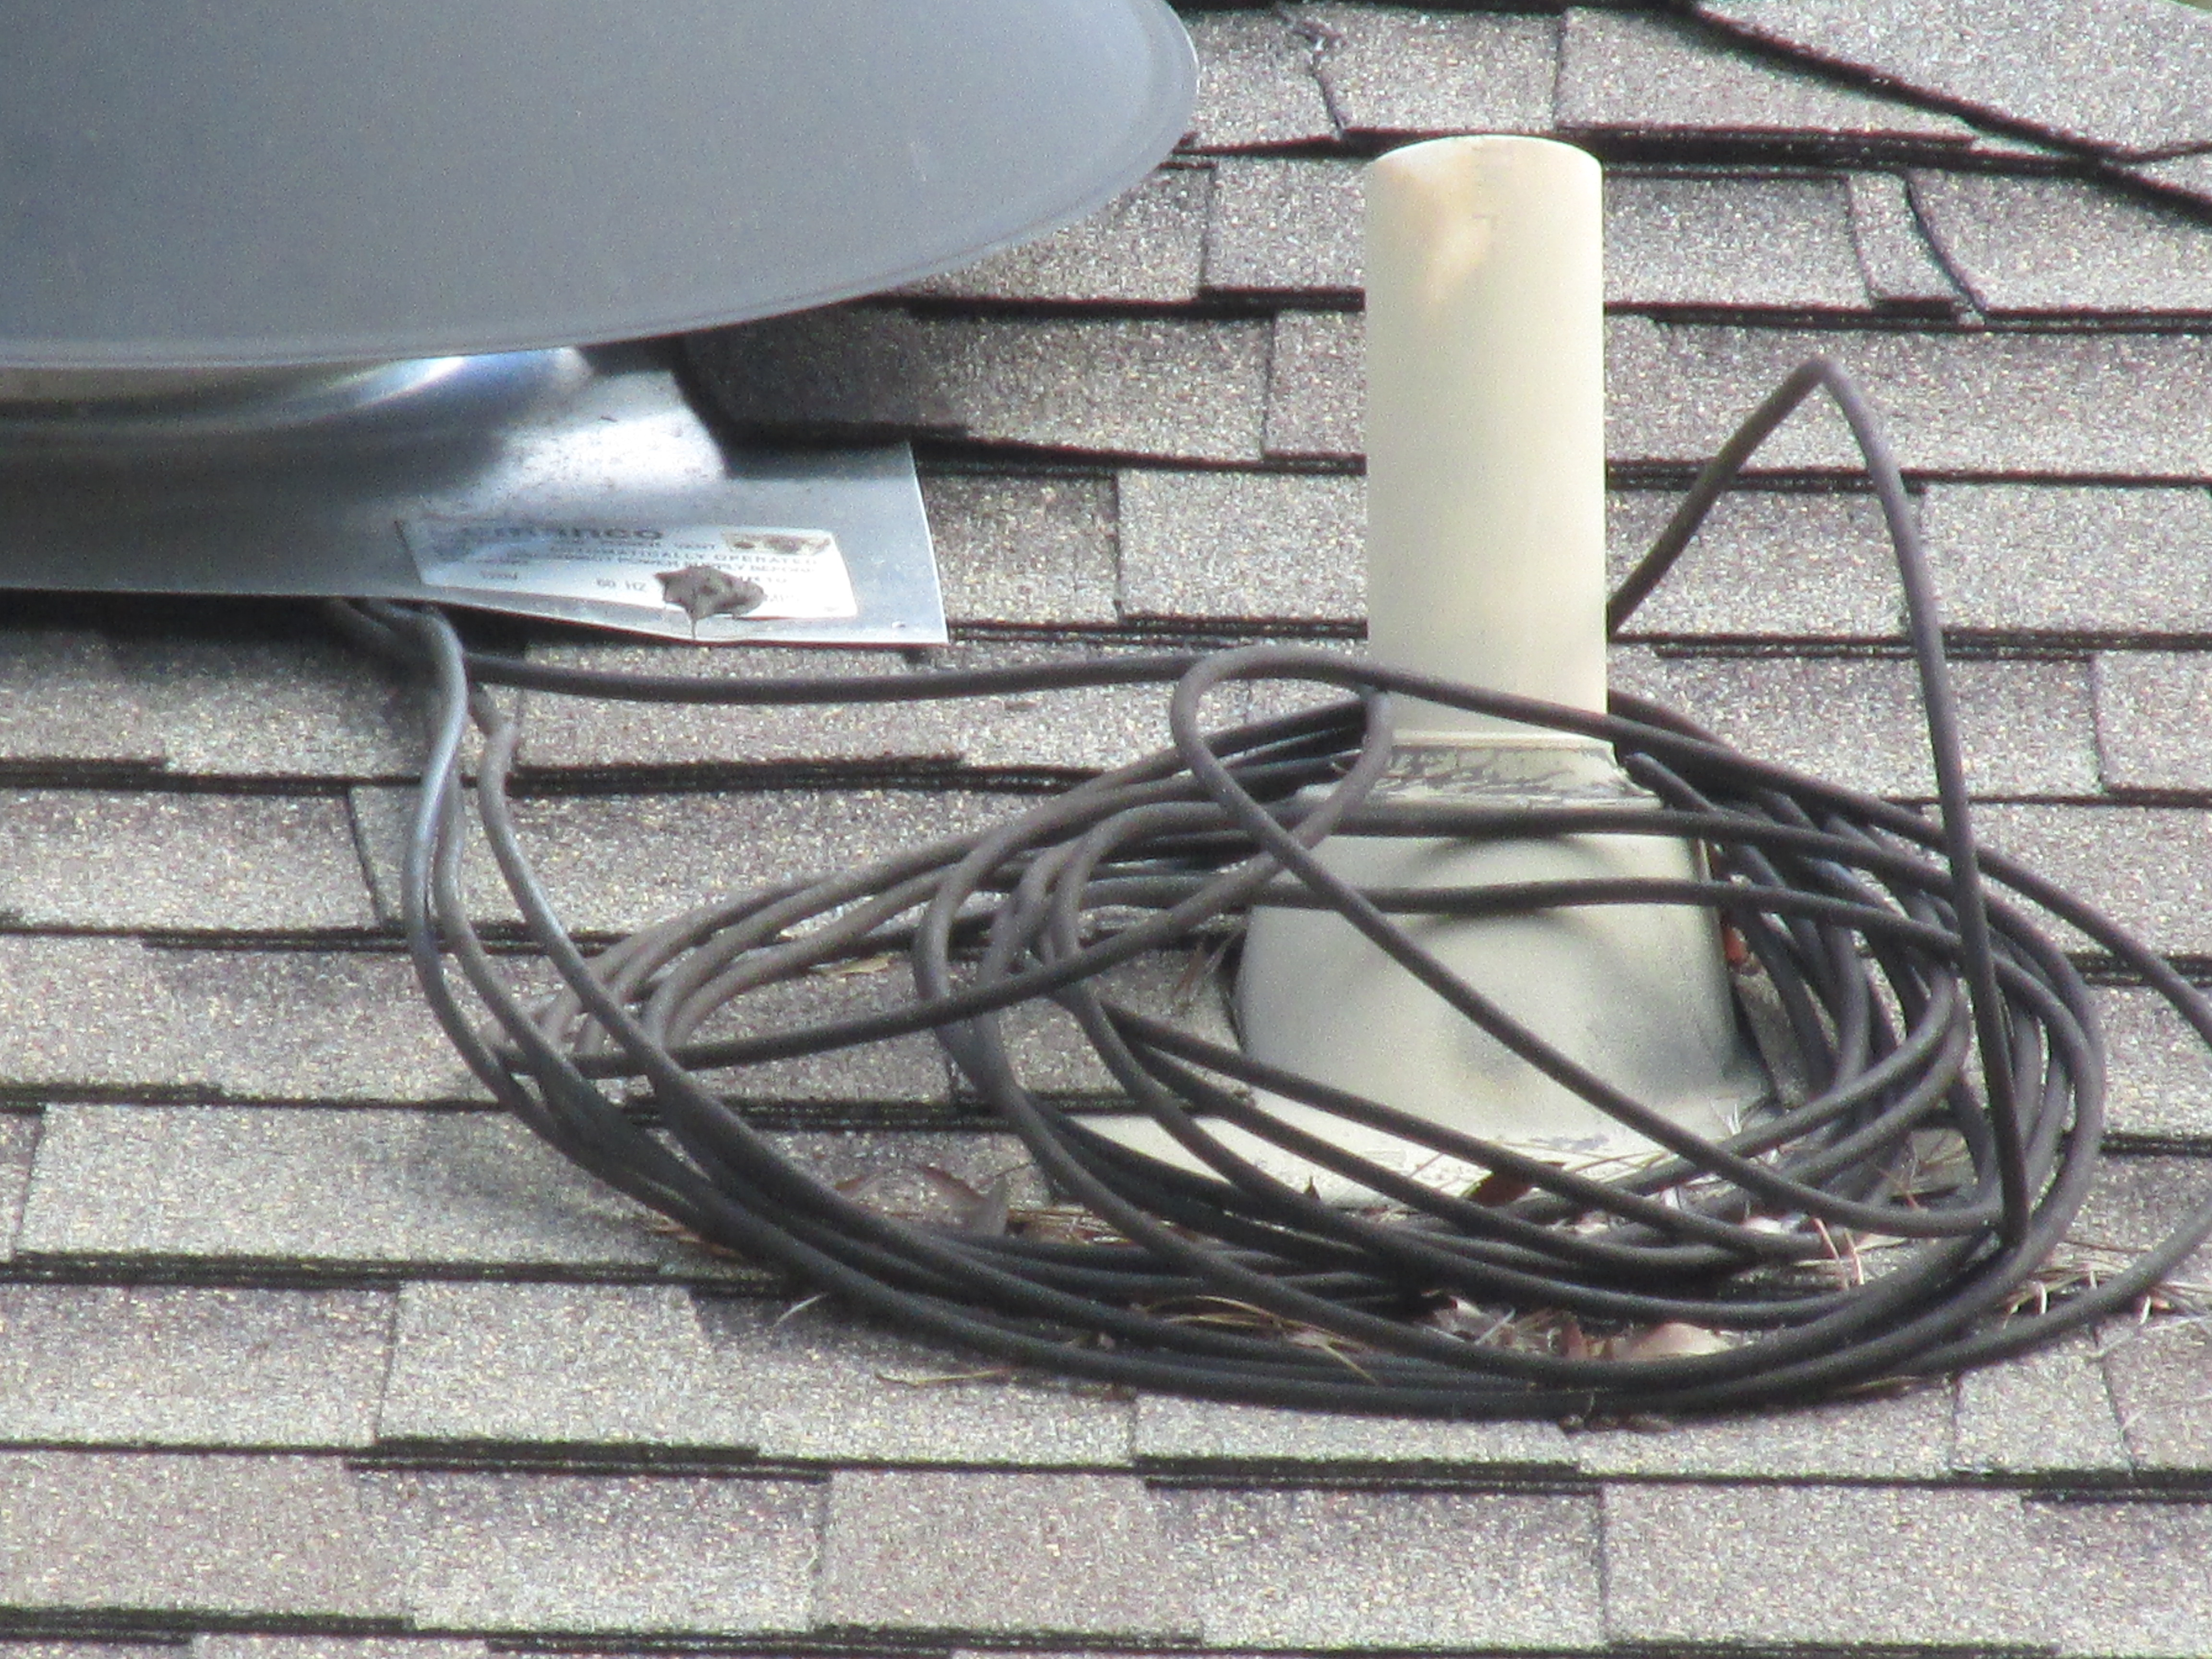 Wiring on roof